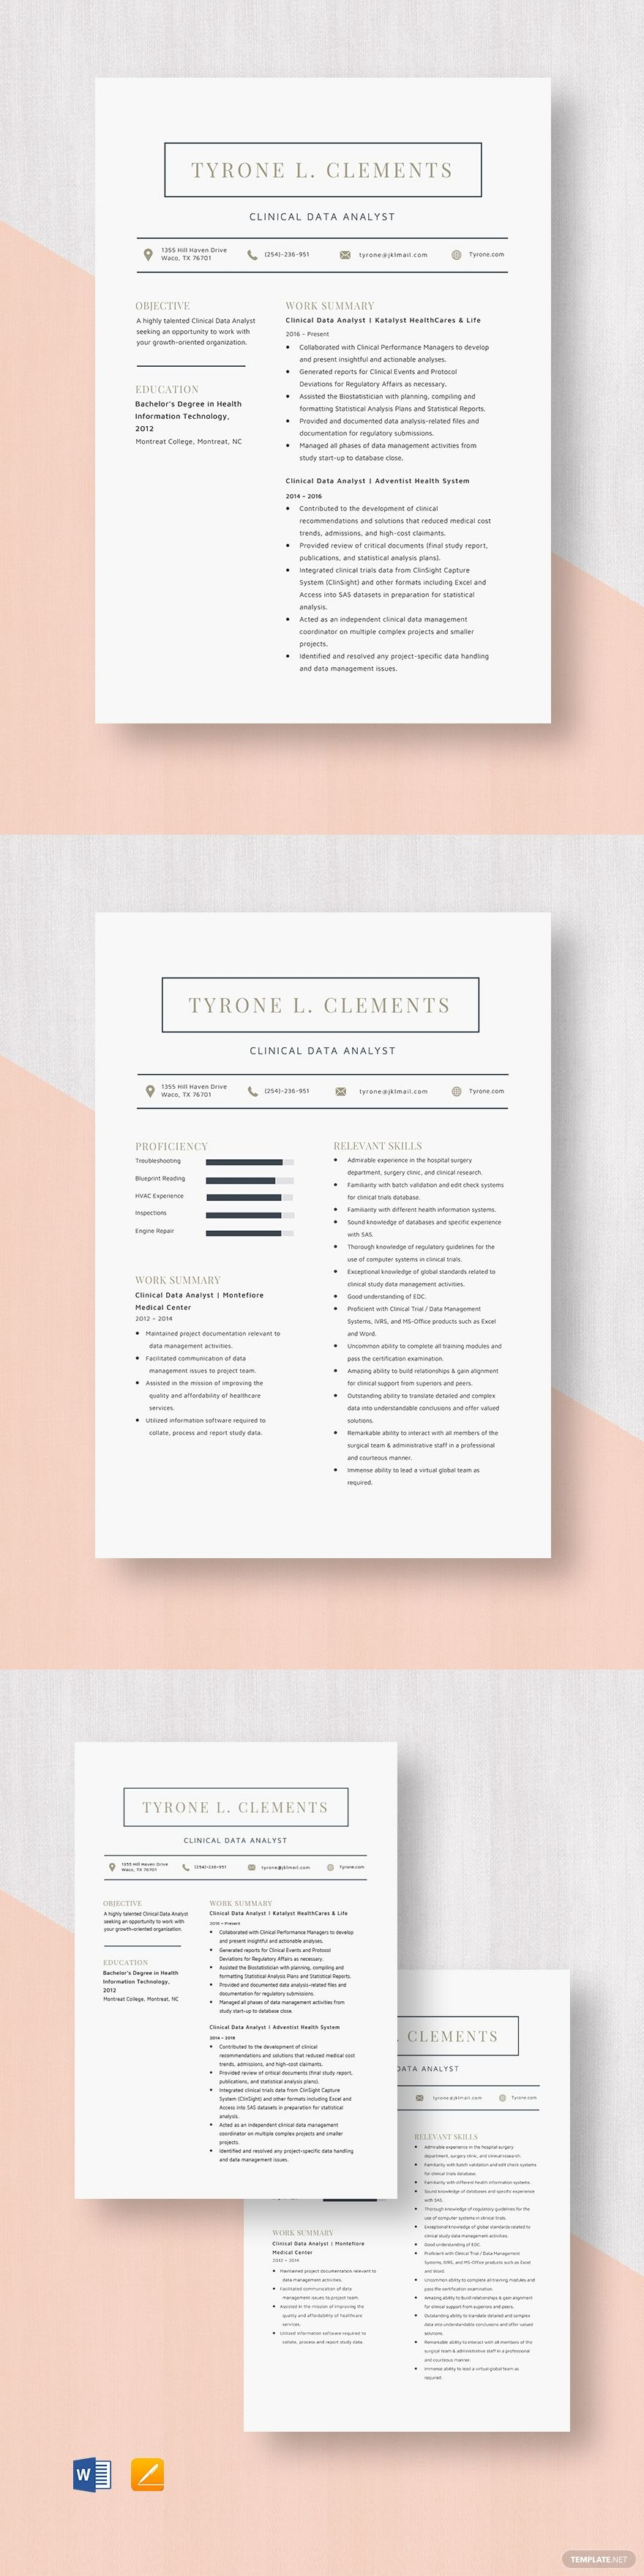 Clinical data analyst resume template ad affiliate